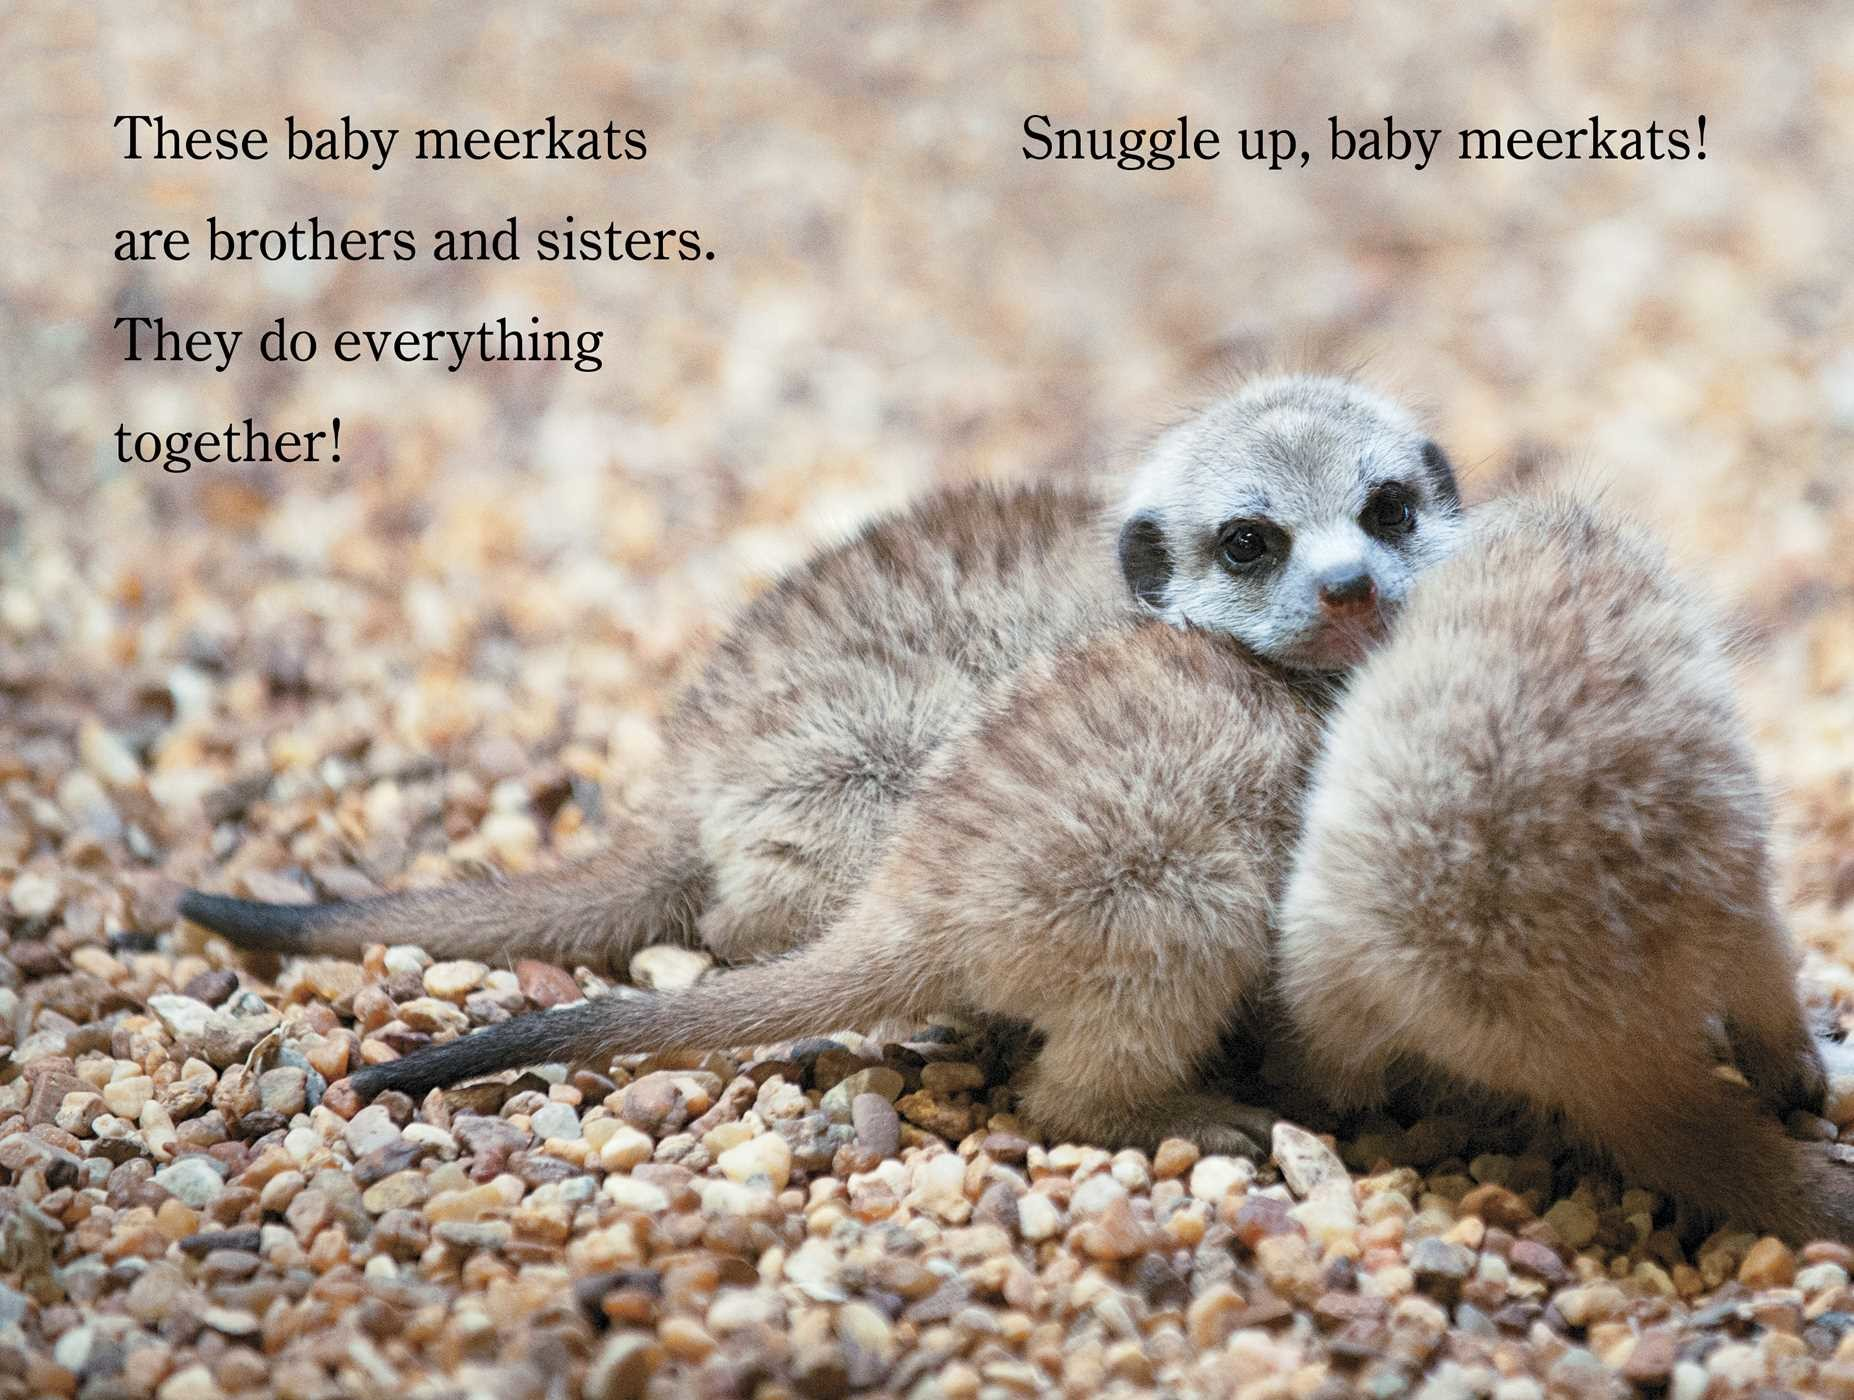 Snuggle up zooborns 9781481431002.in02